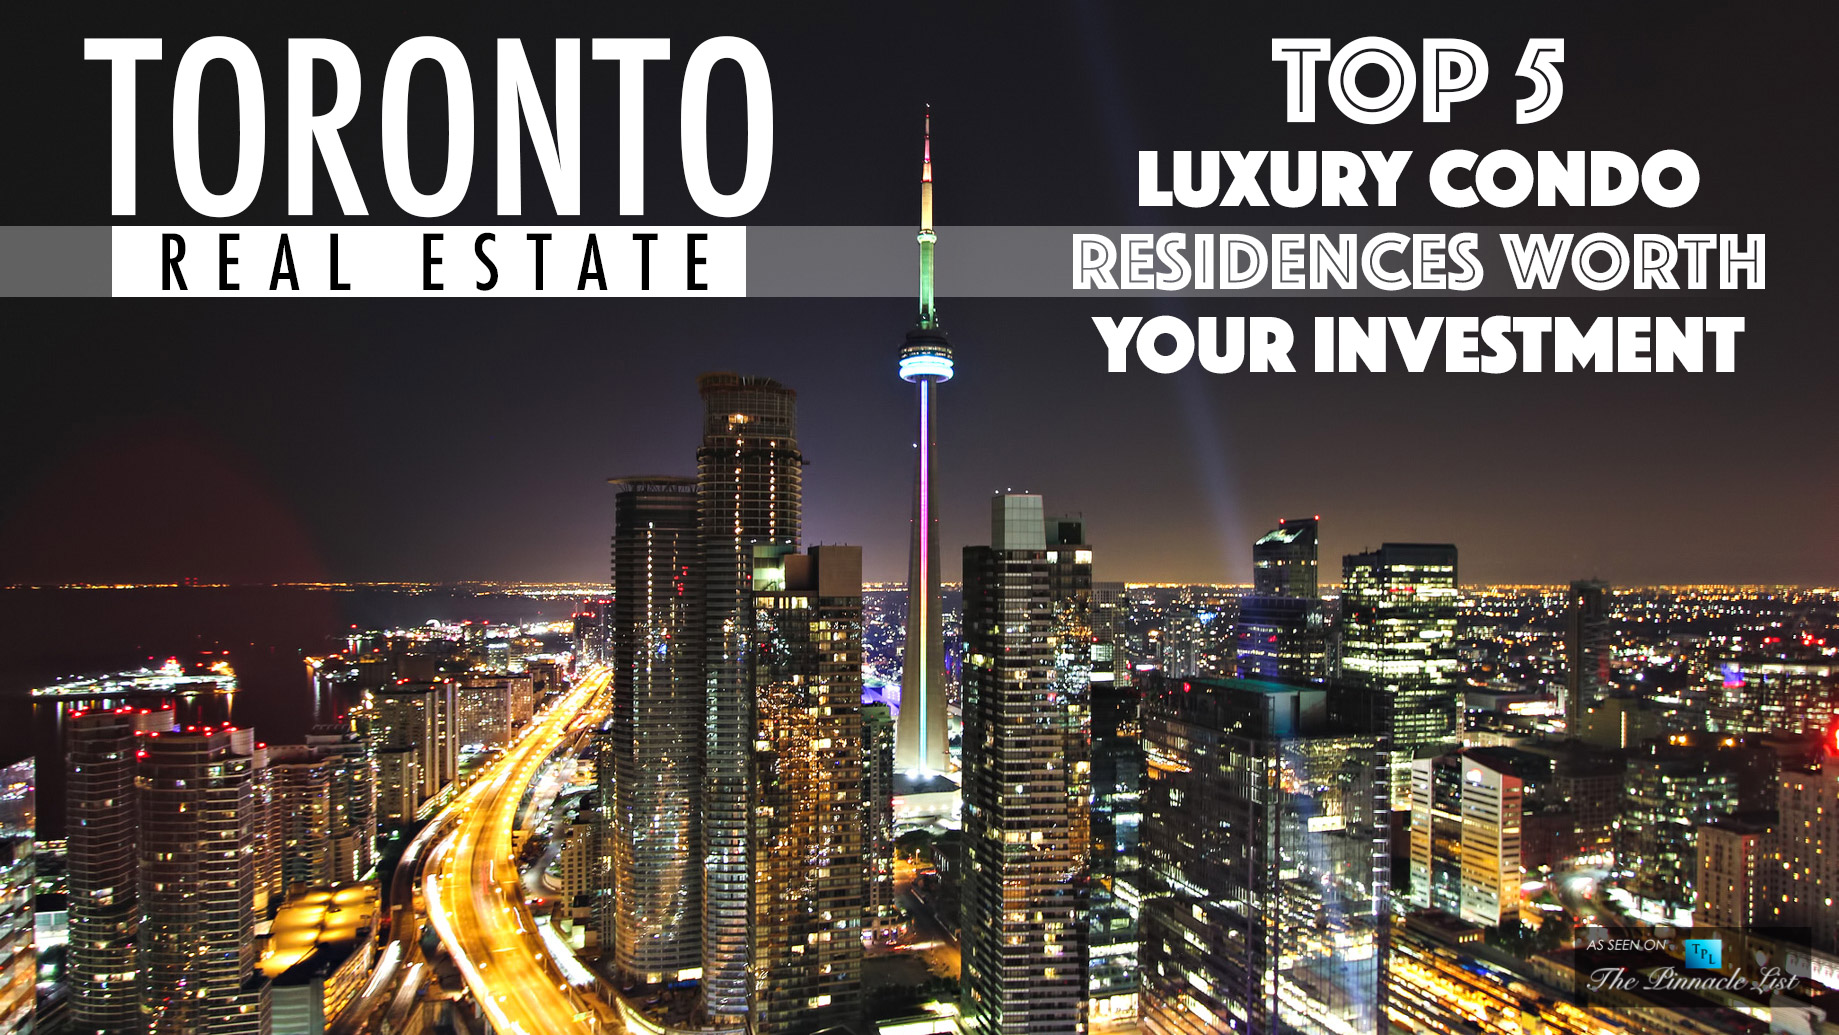 Toronto Real Estate – Top 5 Luxury Condo Residences Worth Your Investment